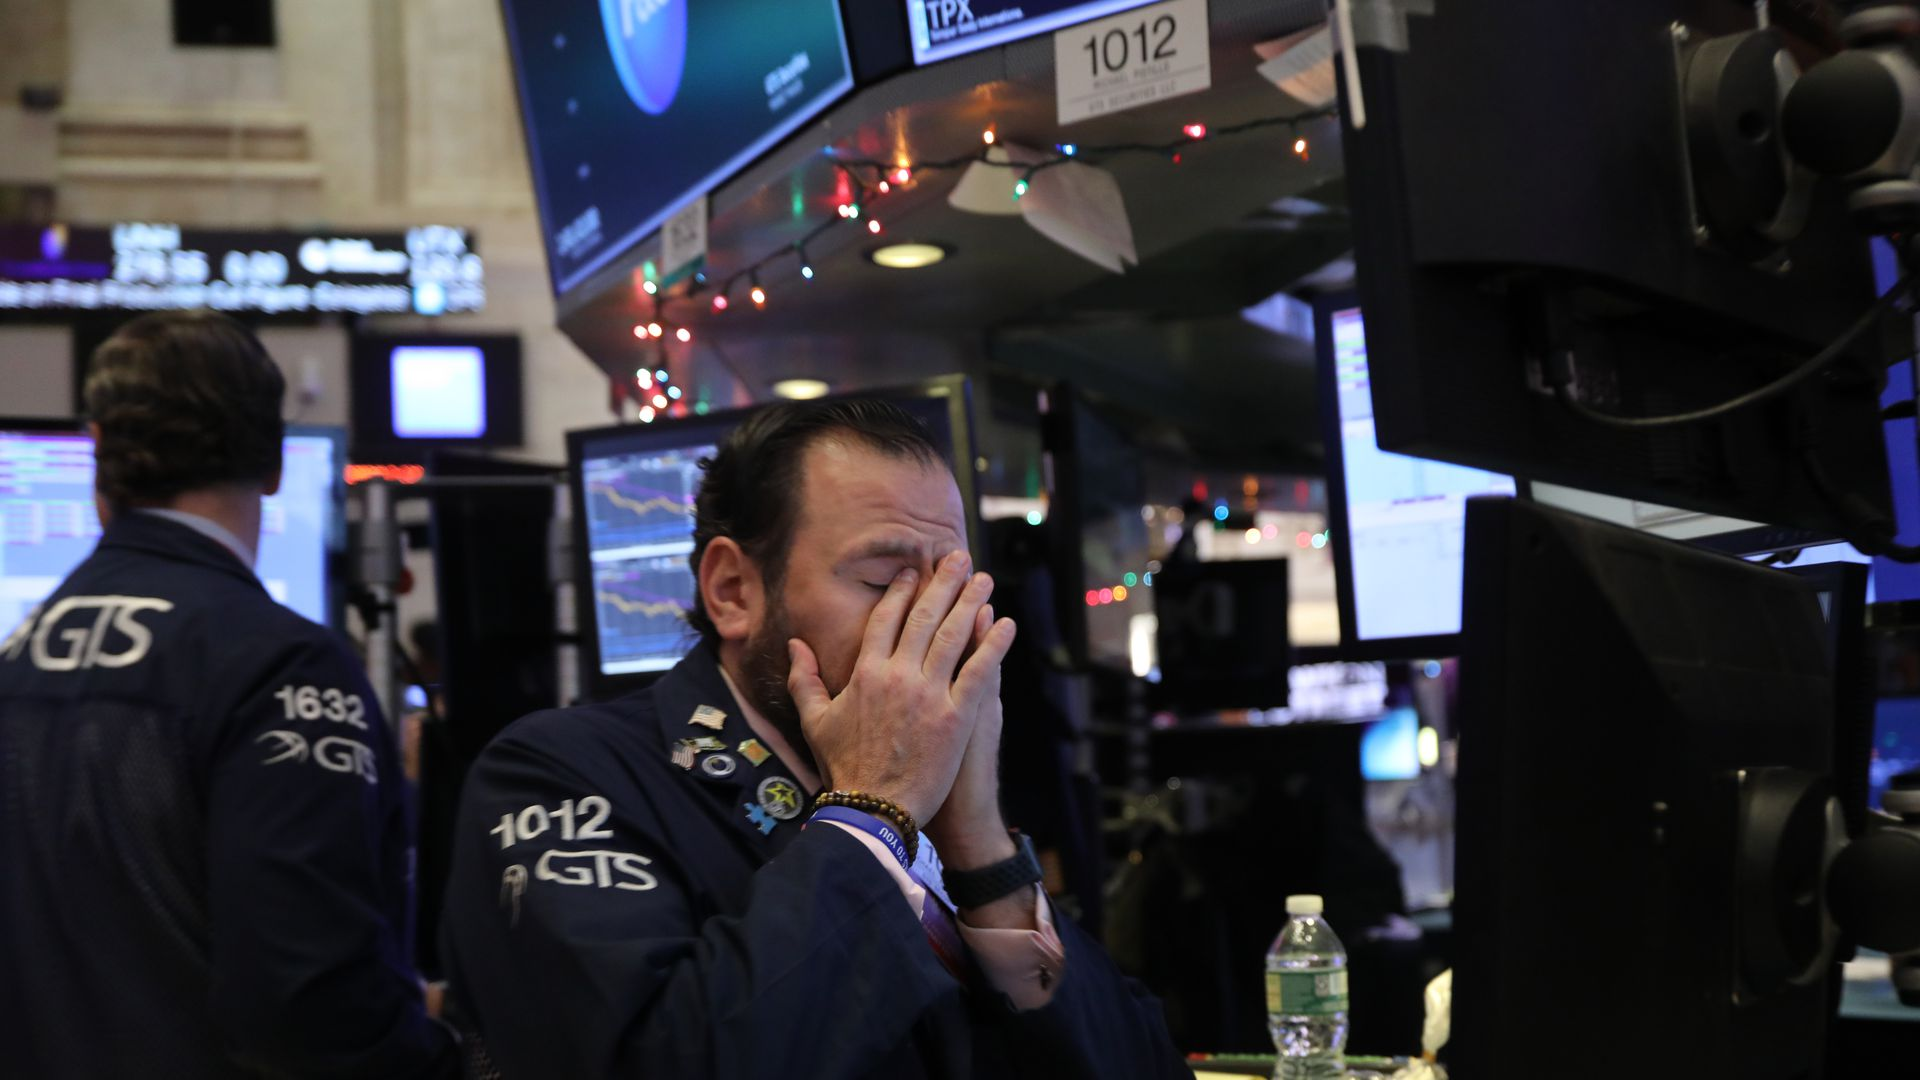 Stock trader with hands over his face.